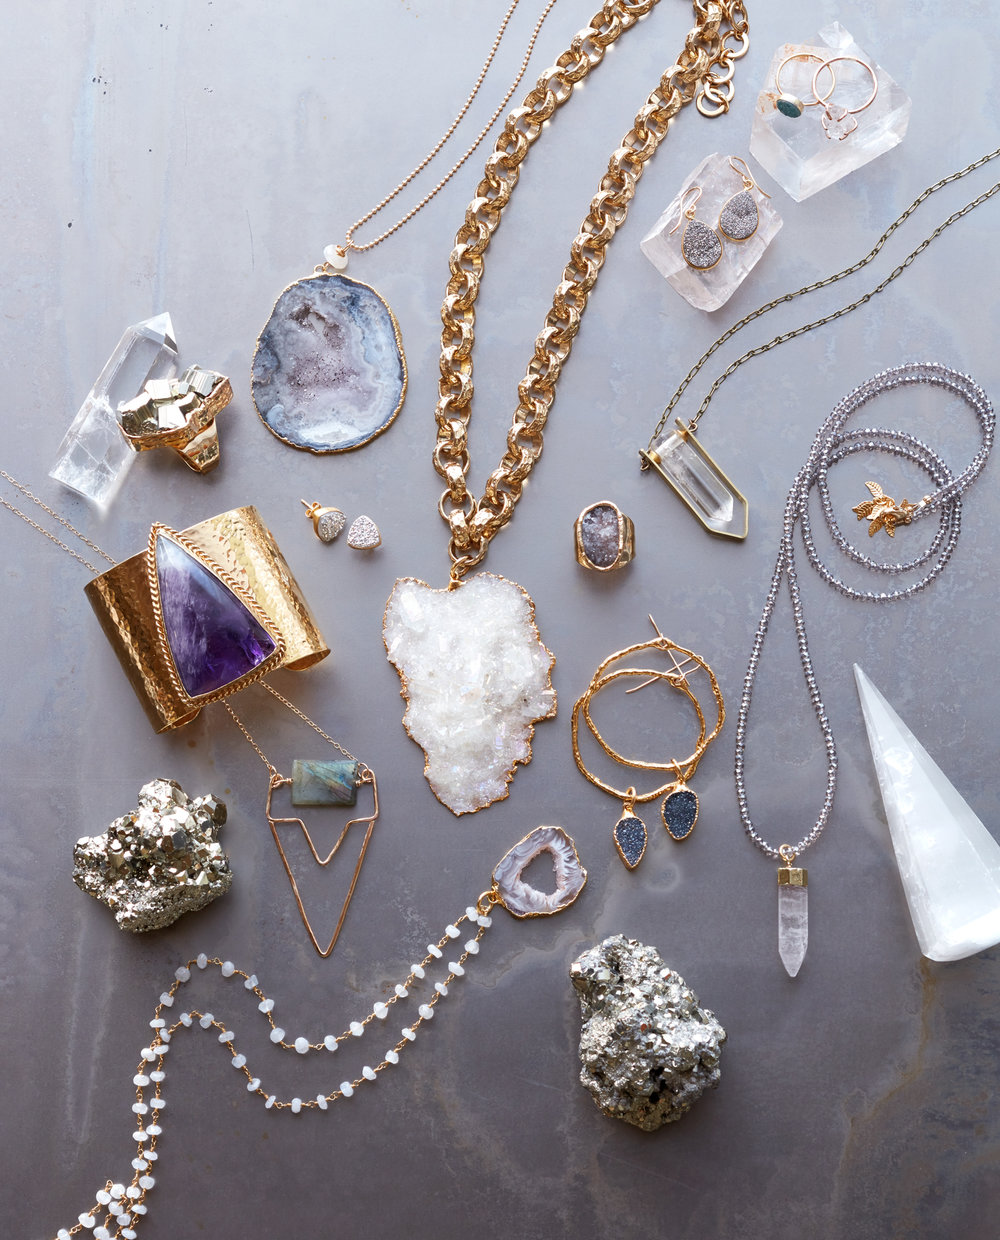 DerekIsraelsen_ Jewelry_NeedfulThings_Geodes_1.jpg